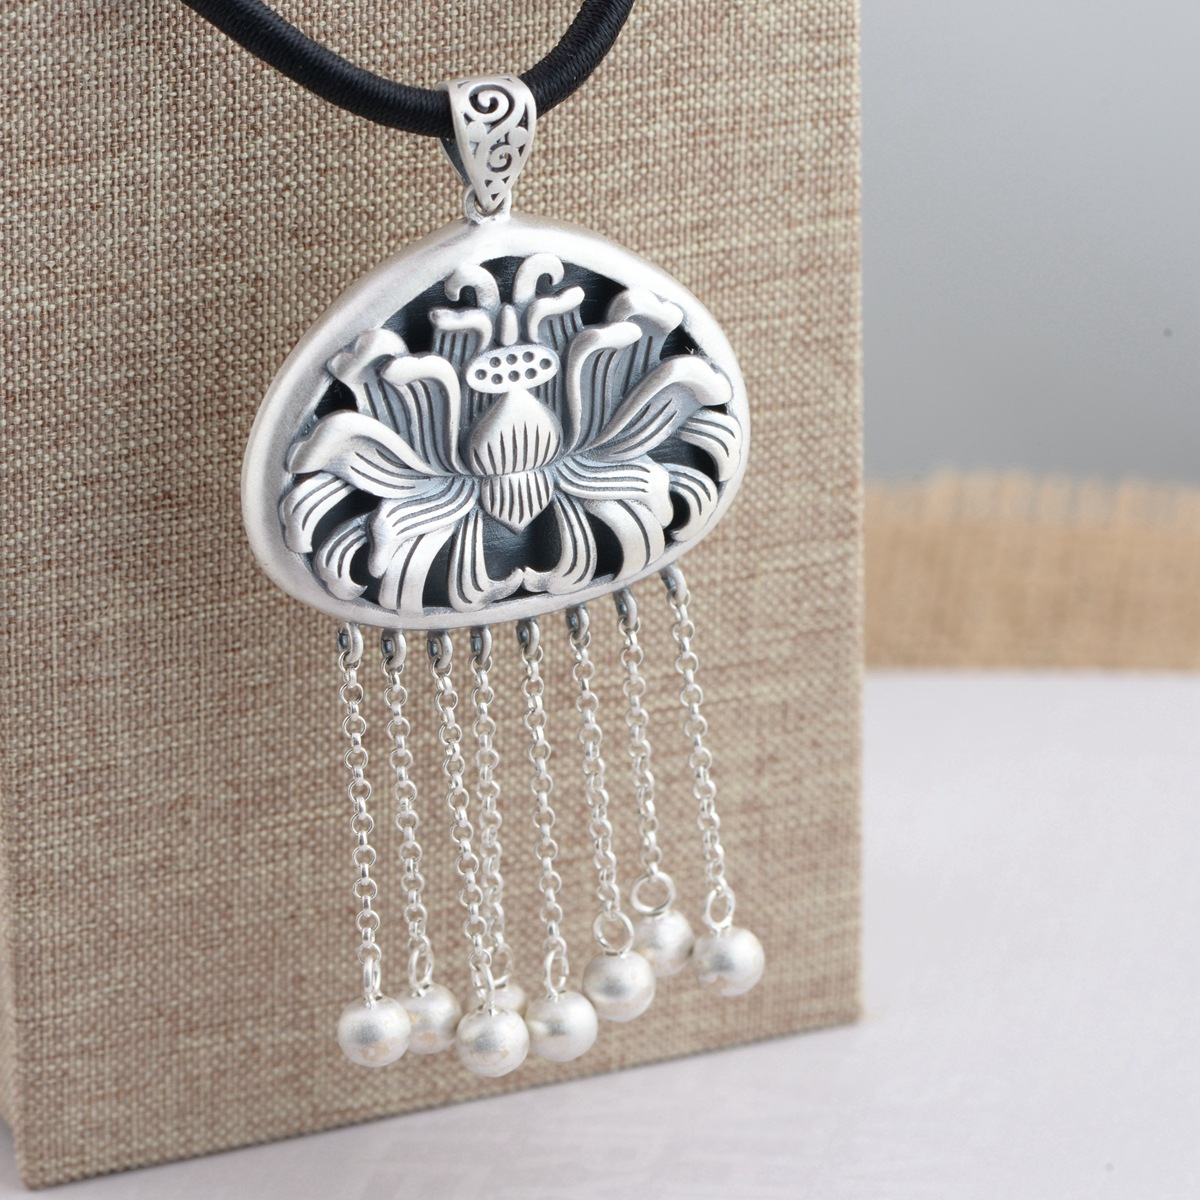 все цены на Handmade silver wholesale 990 fine silver pendant Thai silver antique style for women blooming flowers tassel pendant